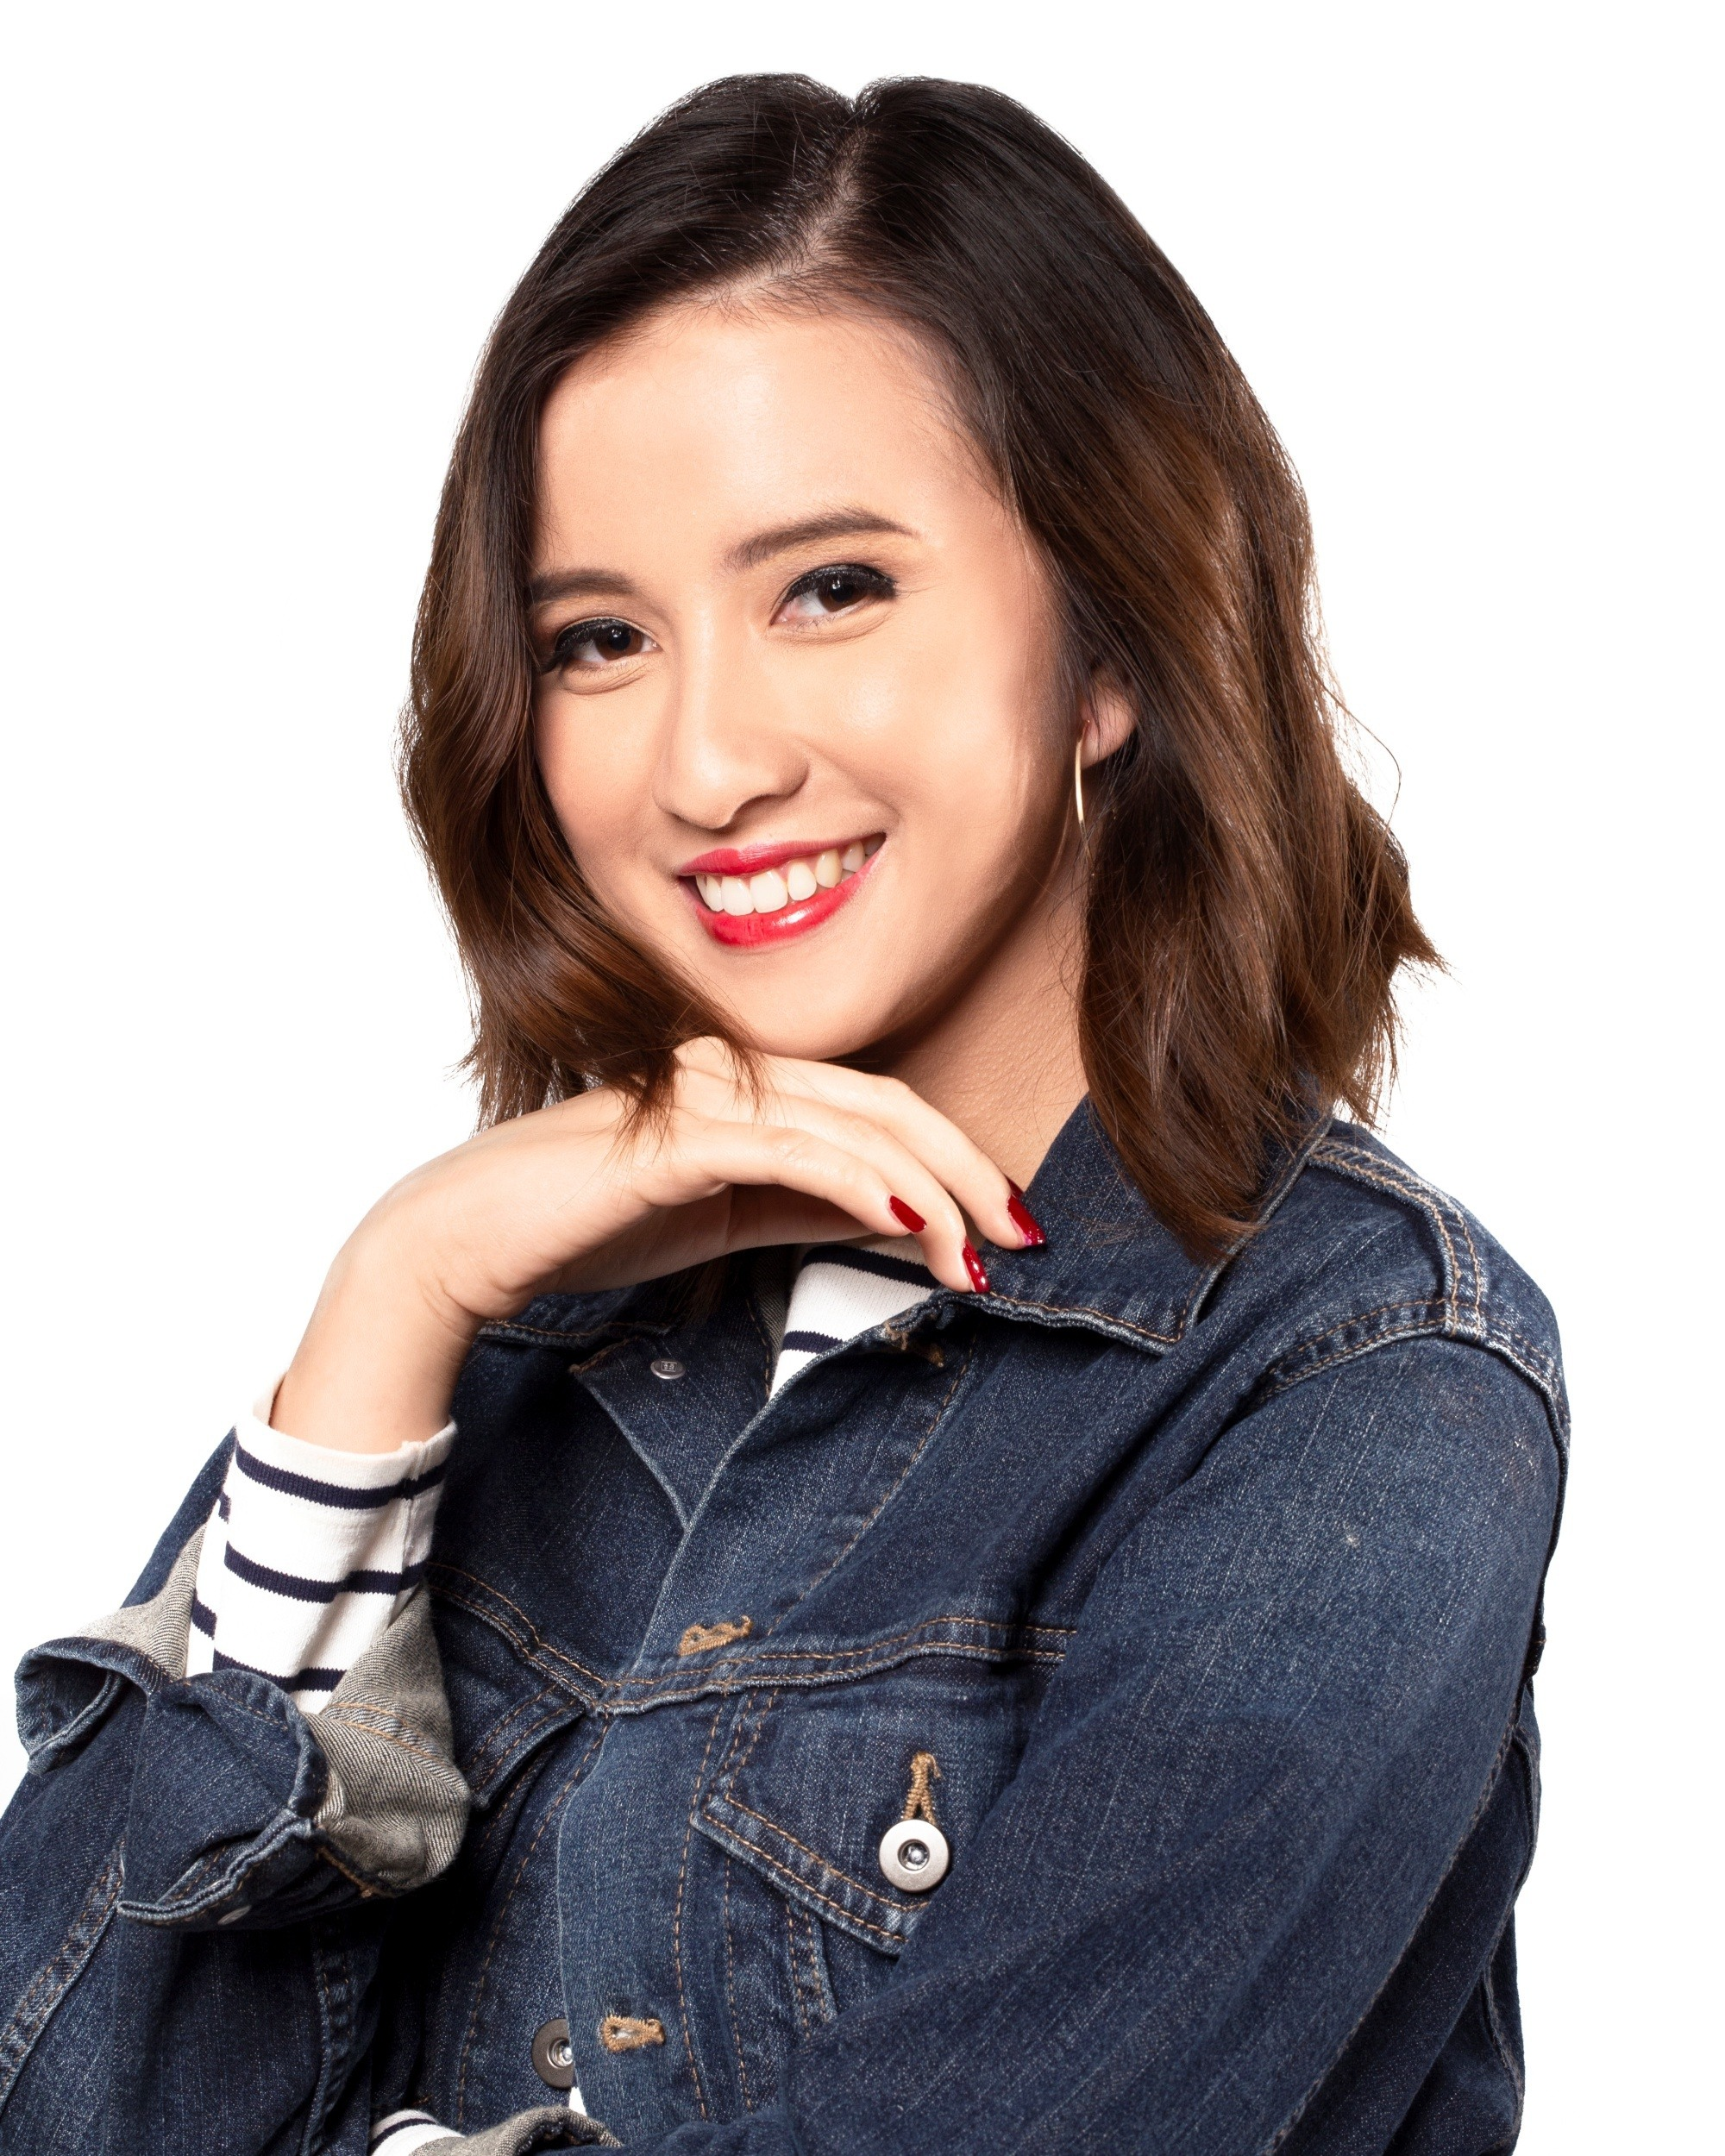 Casual hairstyles: Asian woman with dark brown messy layered bob wearing a denim jacket smiling